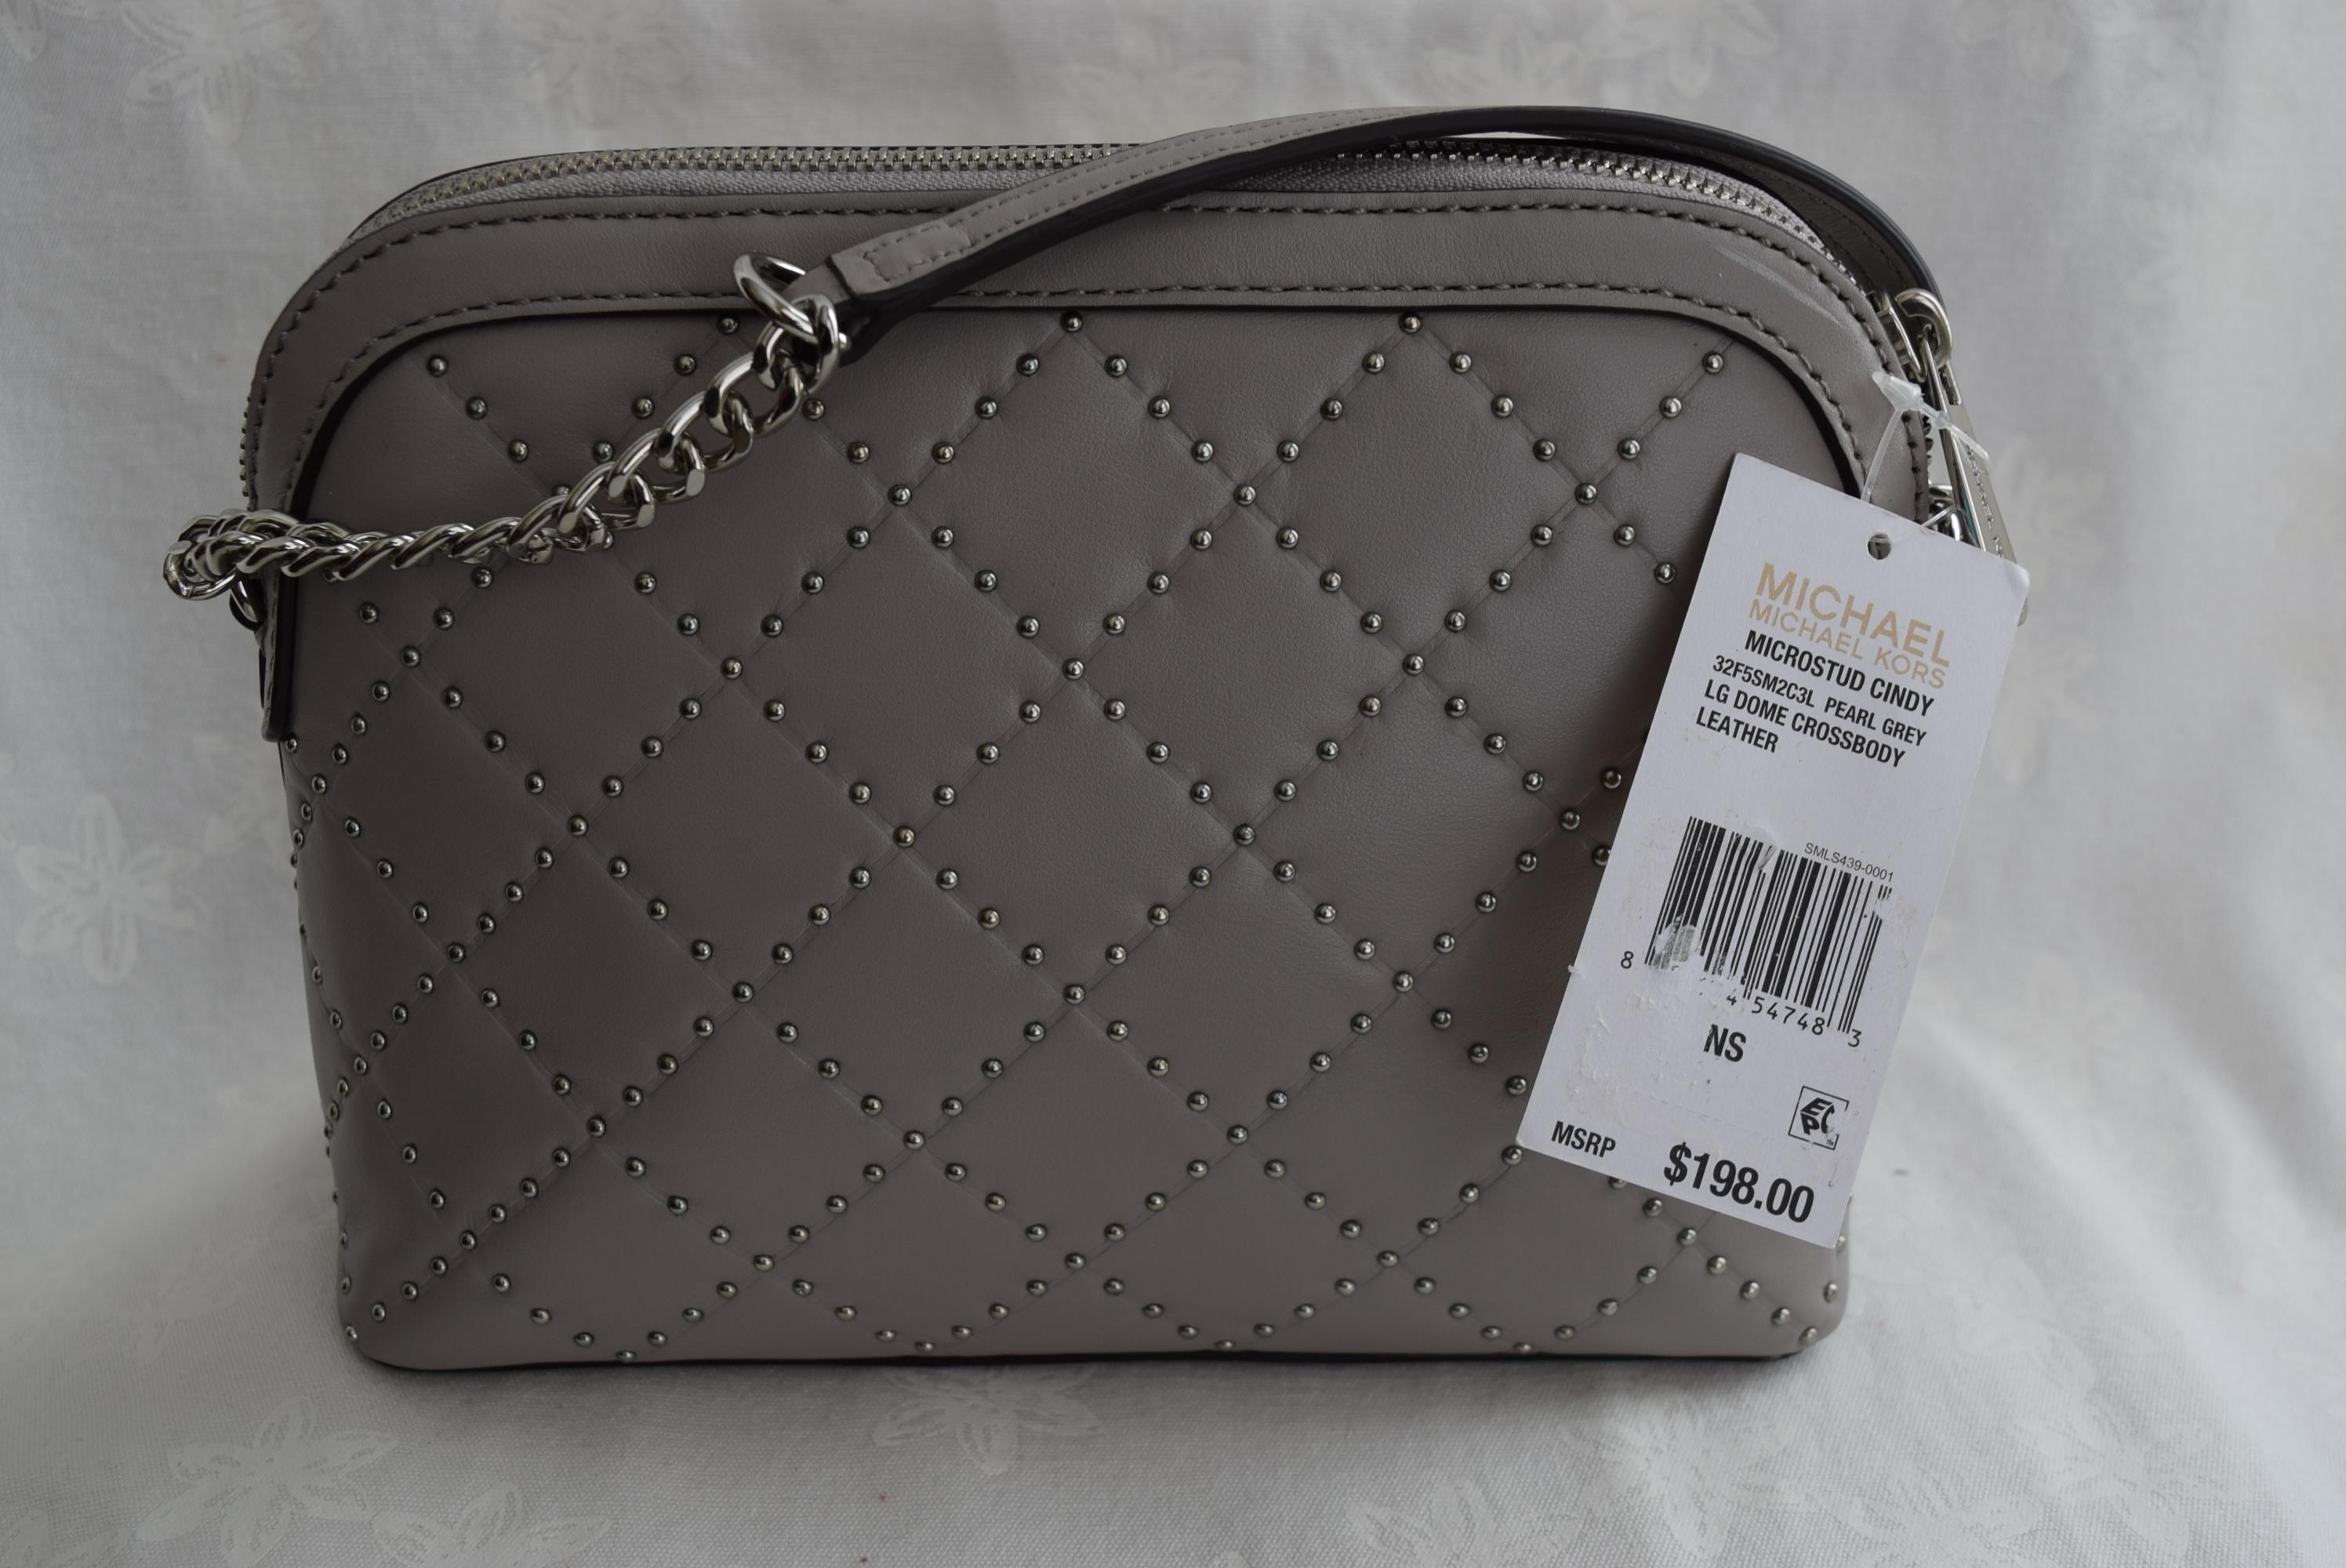 b029ffd4f11b low cost michael kors micro stud cindy lg dome crossbody bag in ballet  details can 04ff7 18982; cheap michael kors cross body bag. 12345 055d2  66ae4